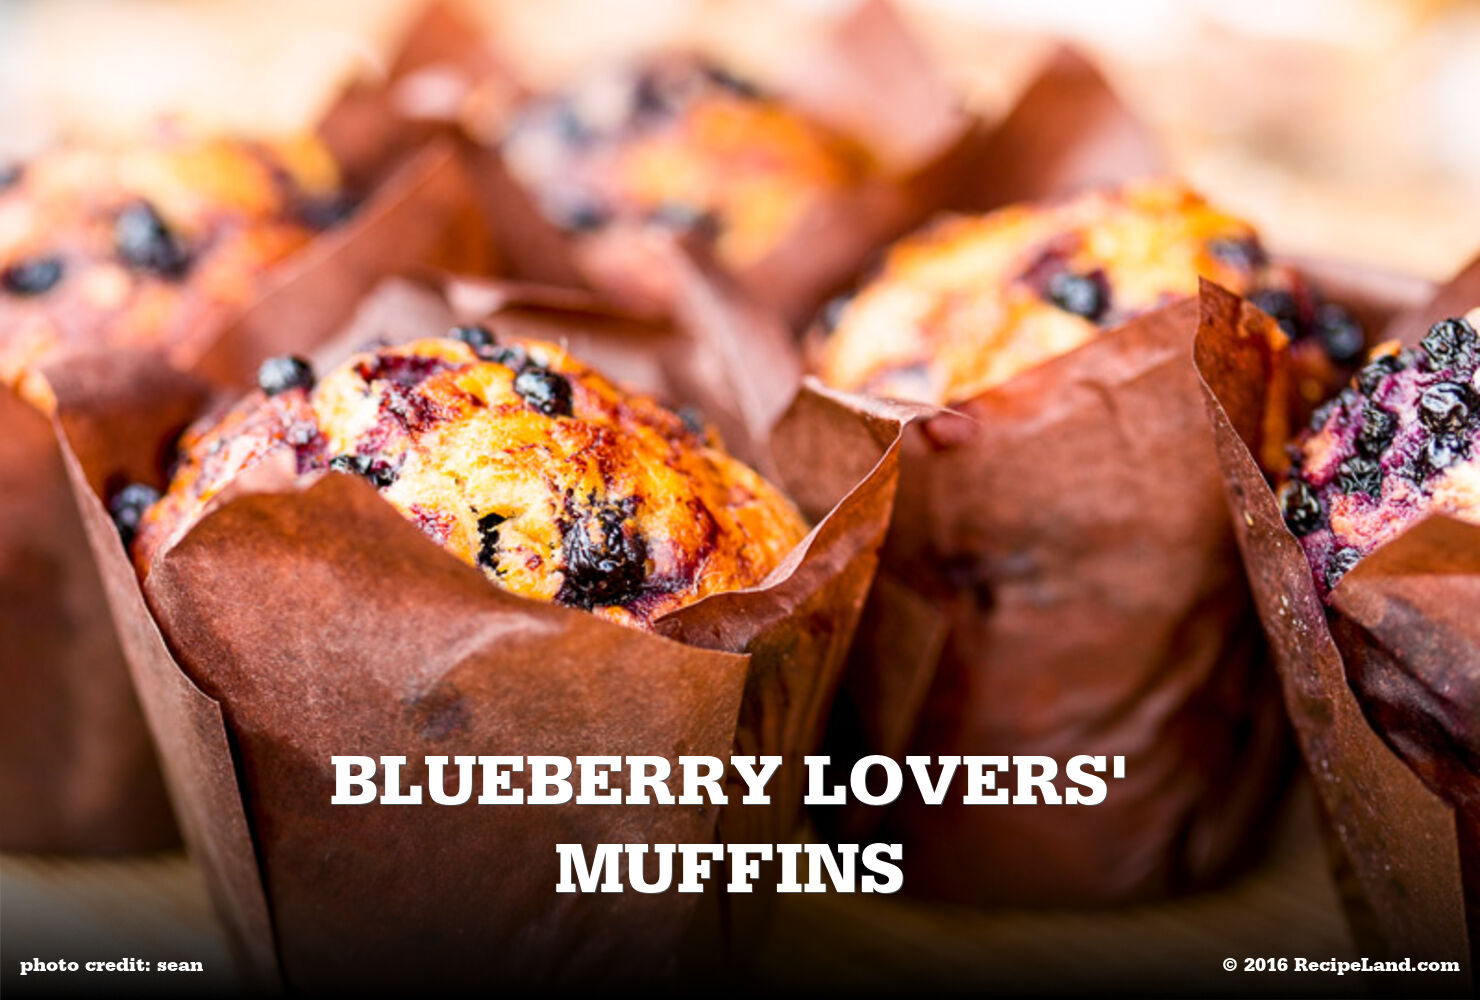 Blueberry Lovers' Muffins